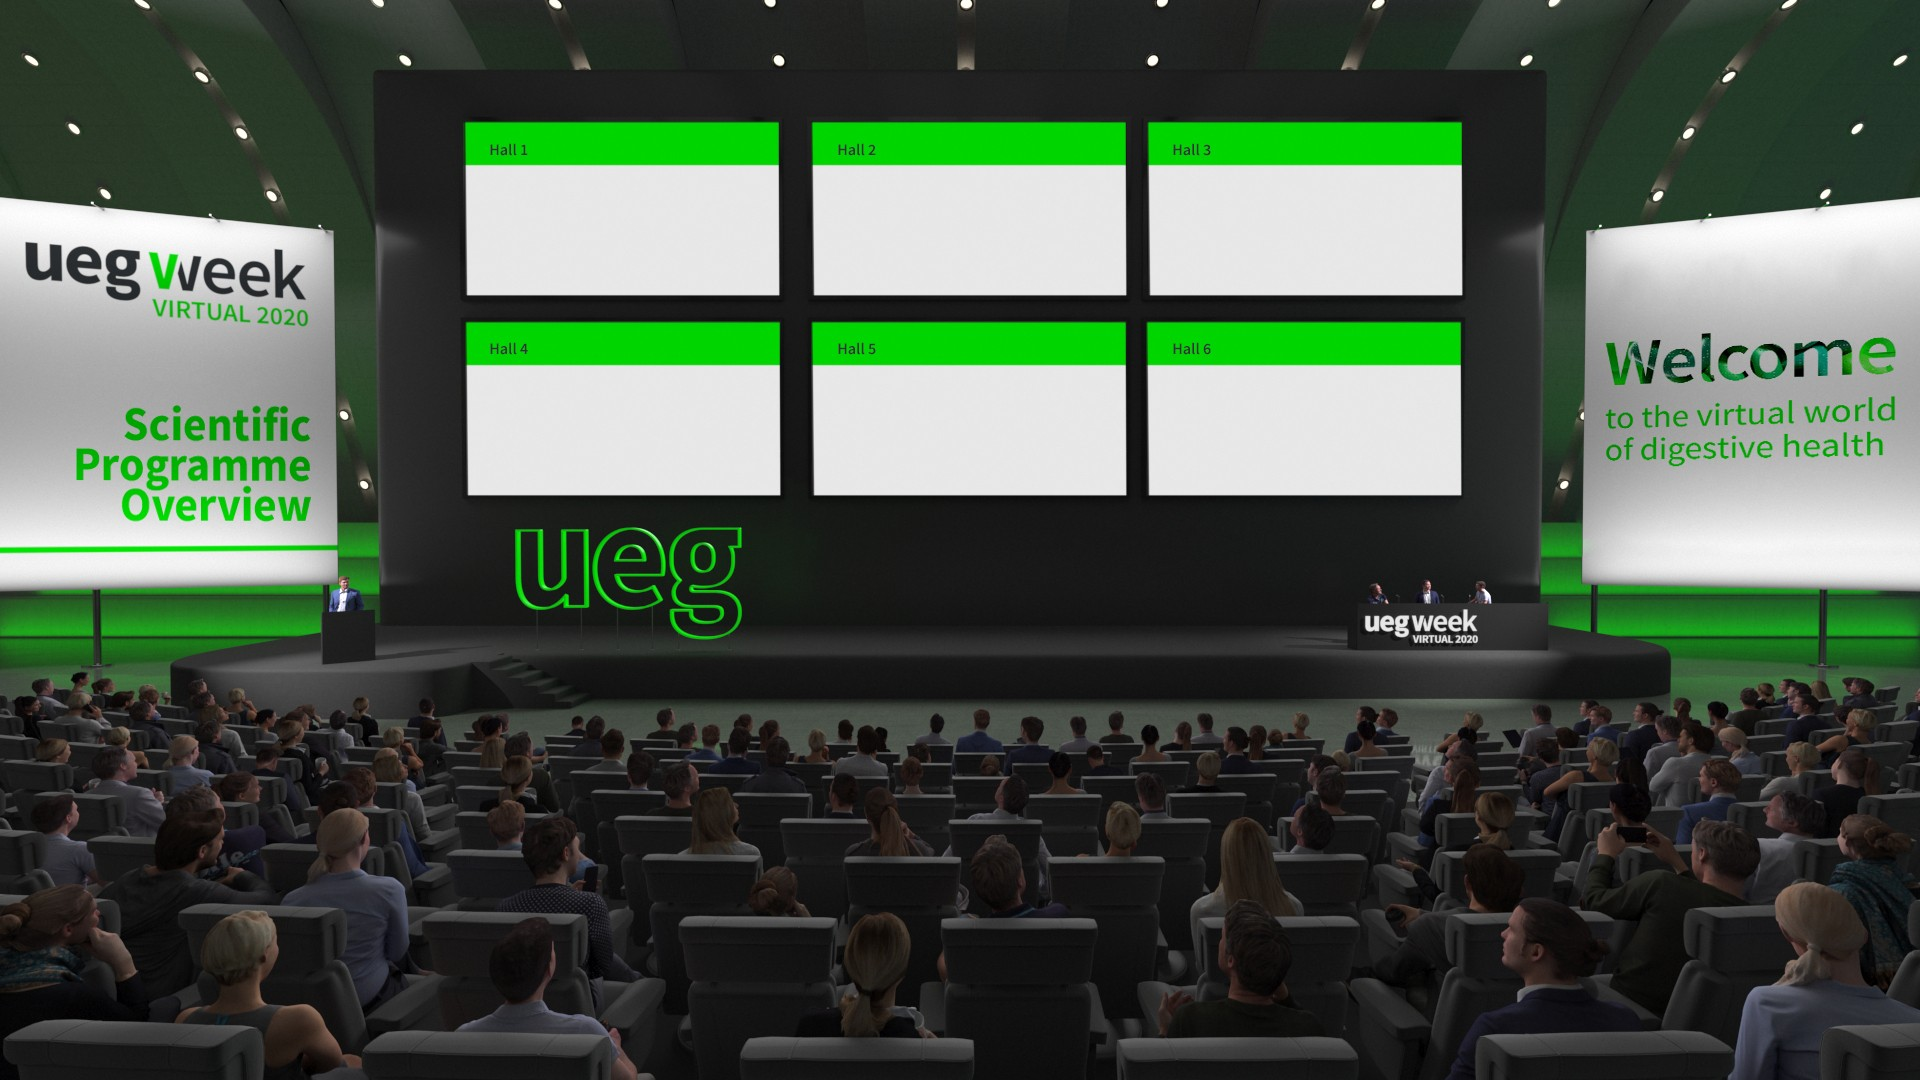 UEG Week Virtual - Lecture Halls